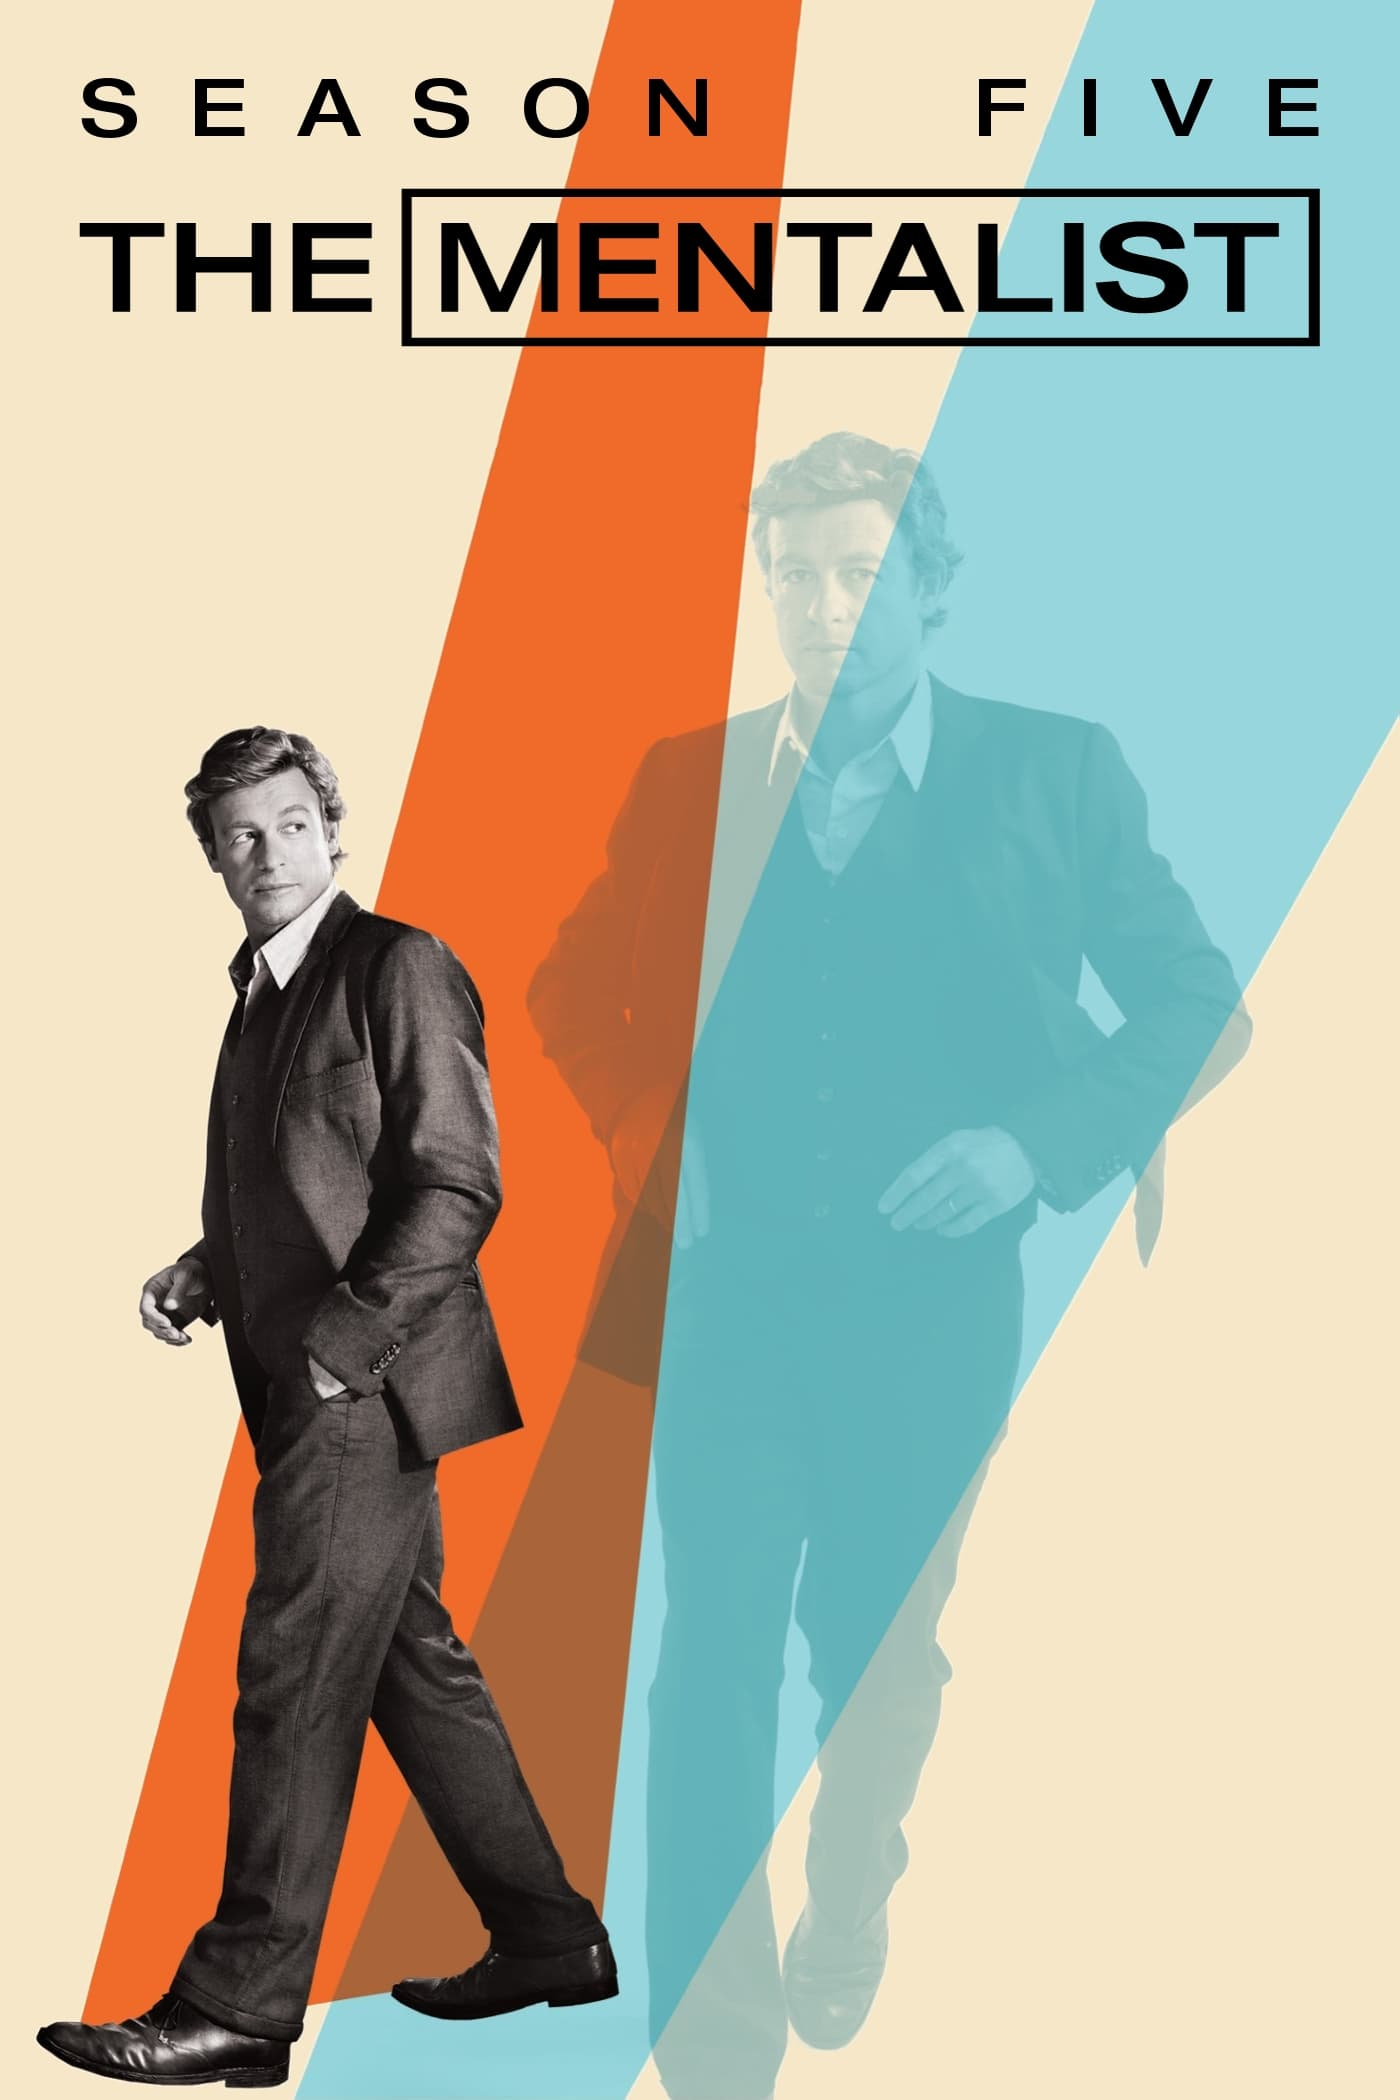 The Mentalist Season 5